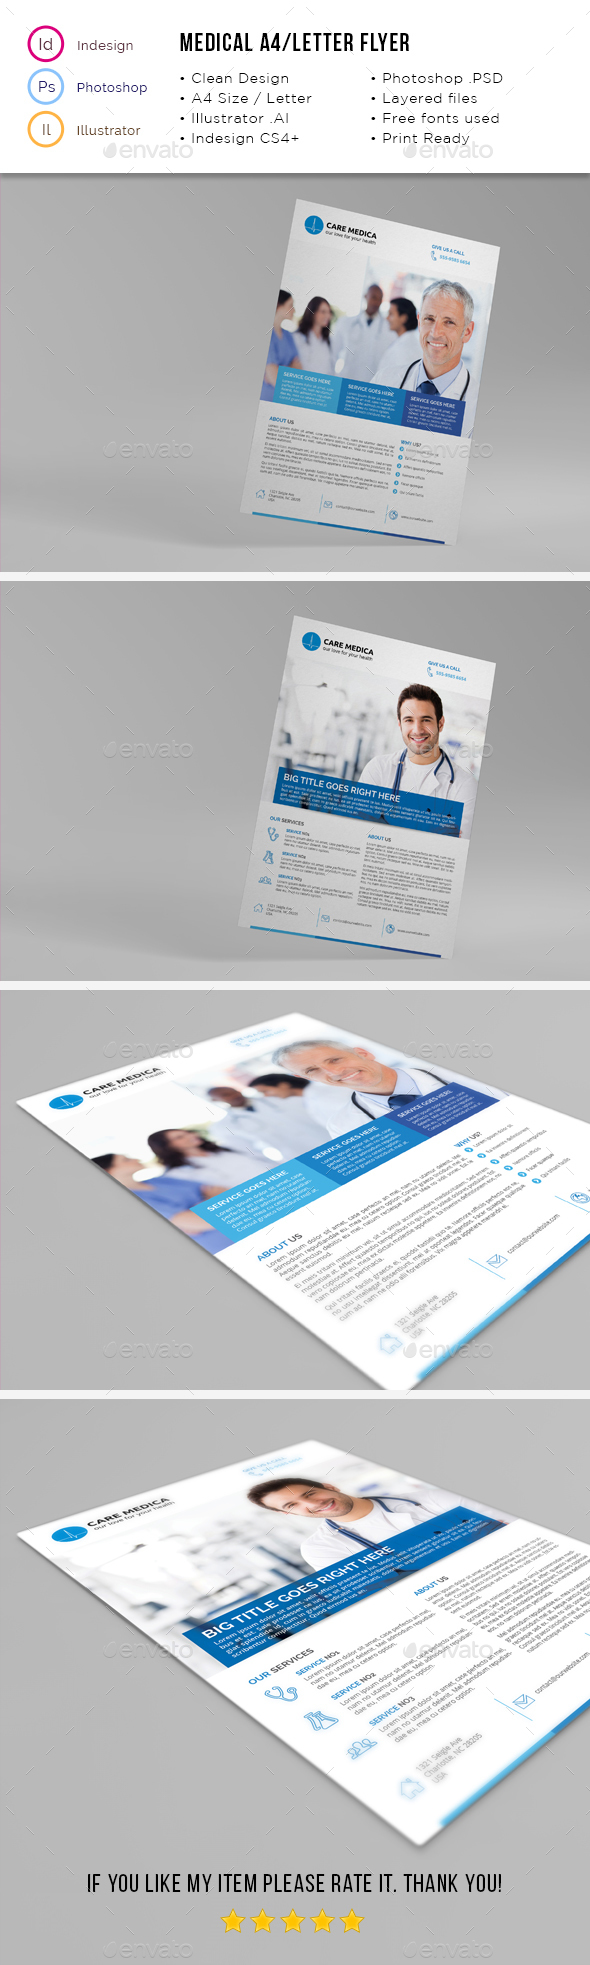 Medical A4 / Letter Flyer 02 - Corporate Flyers